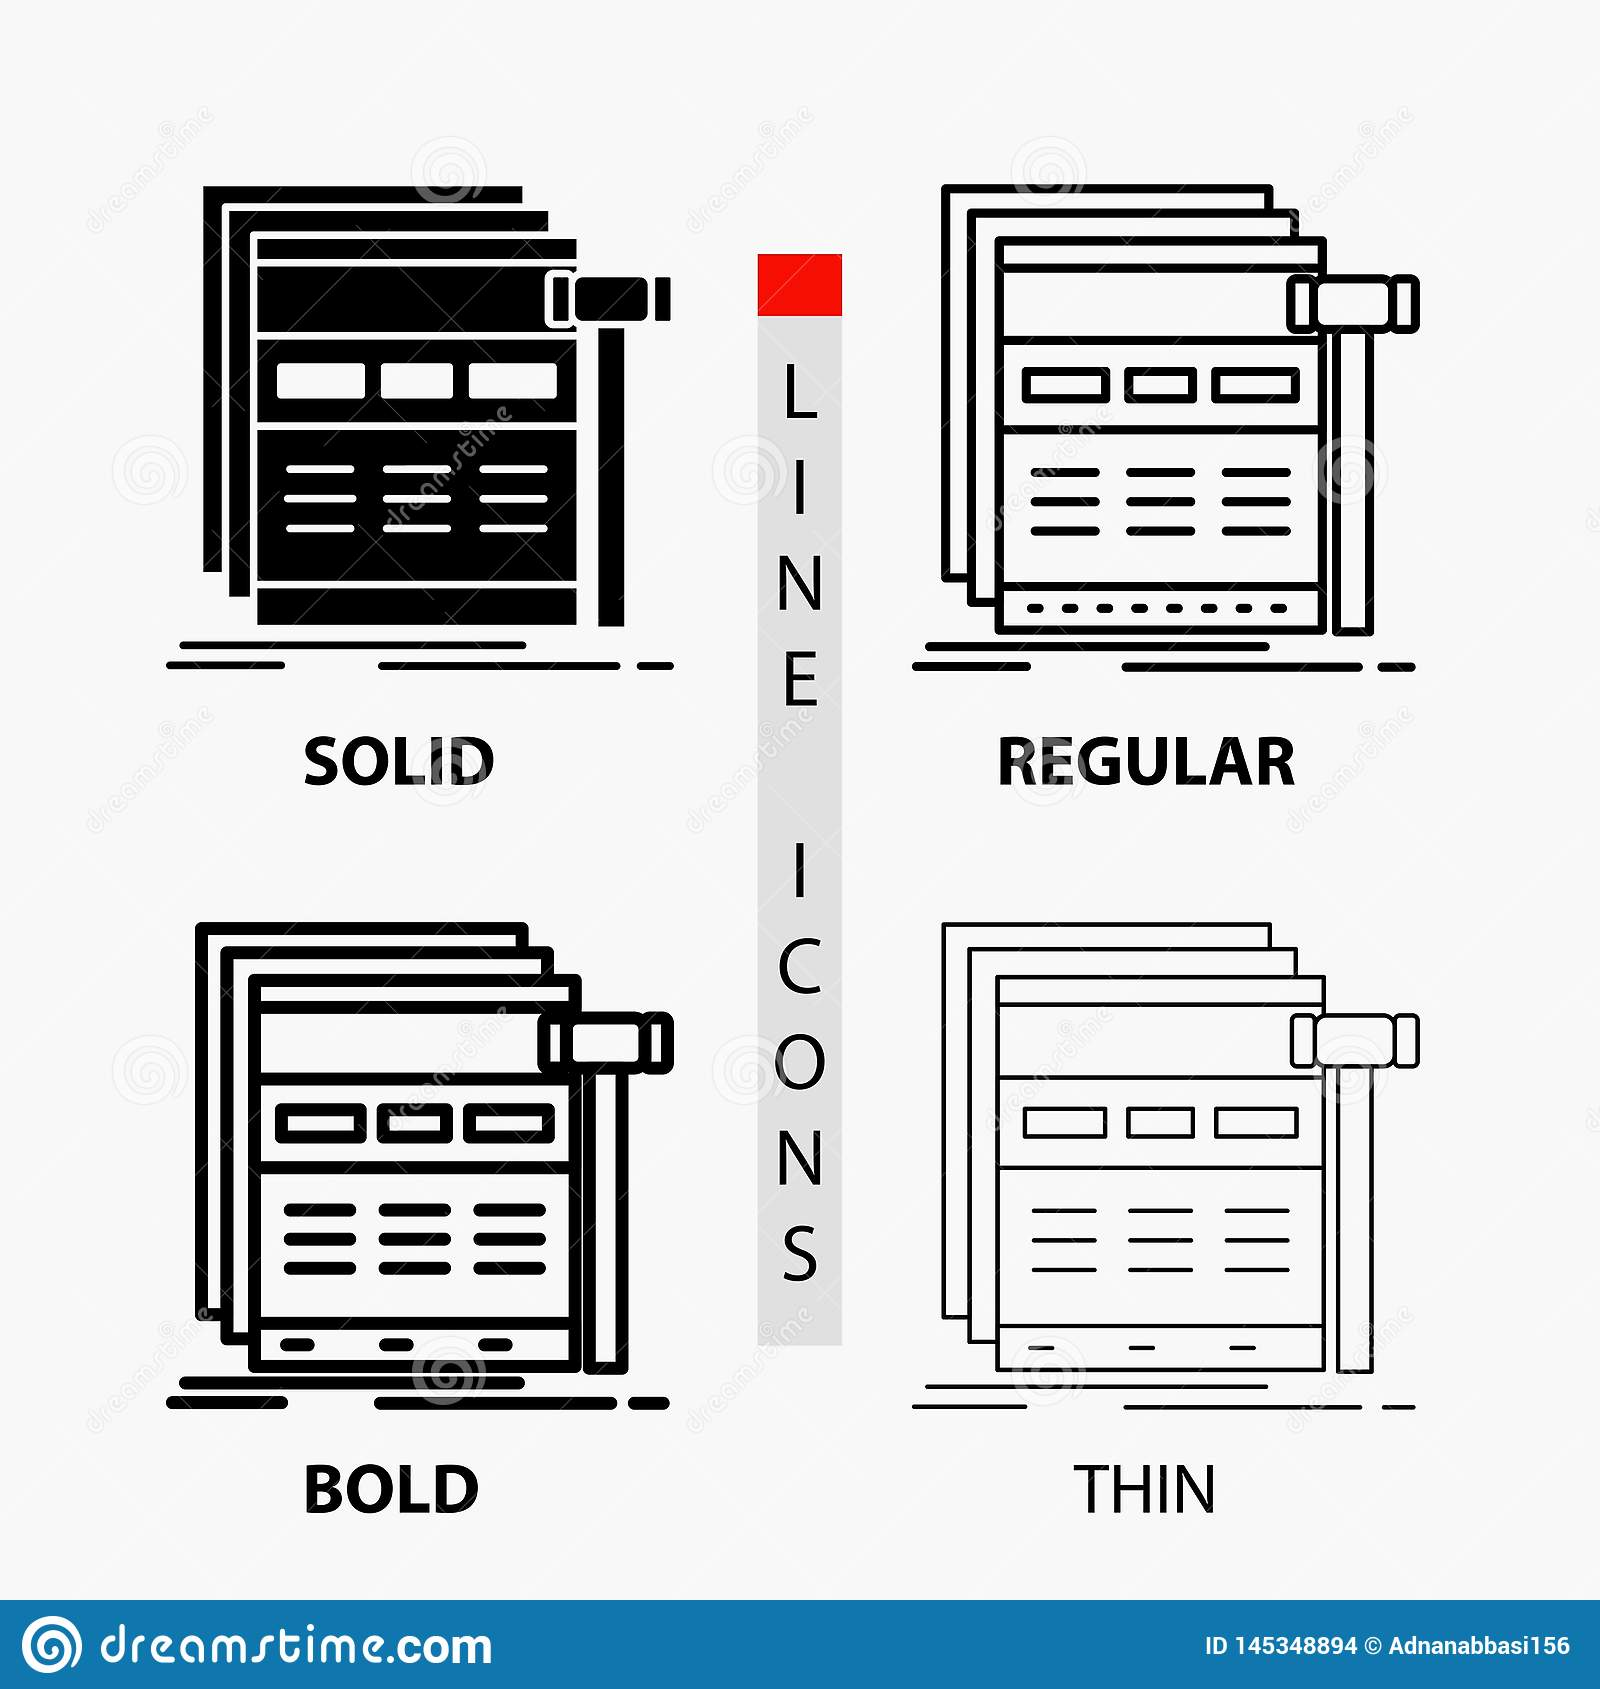 Internet, page, web, webpage, wireframe Icon in Thin, Regular, Bold Line and Glyph Style. Vector illustration